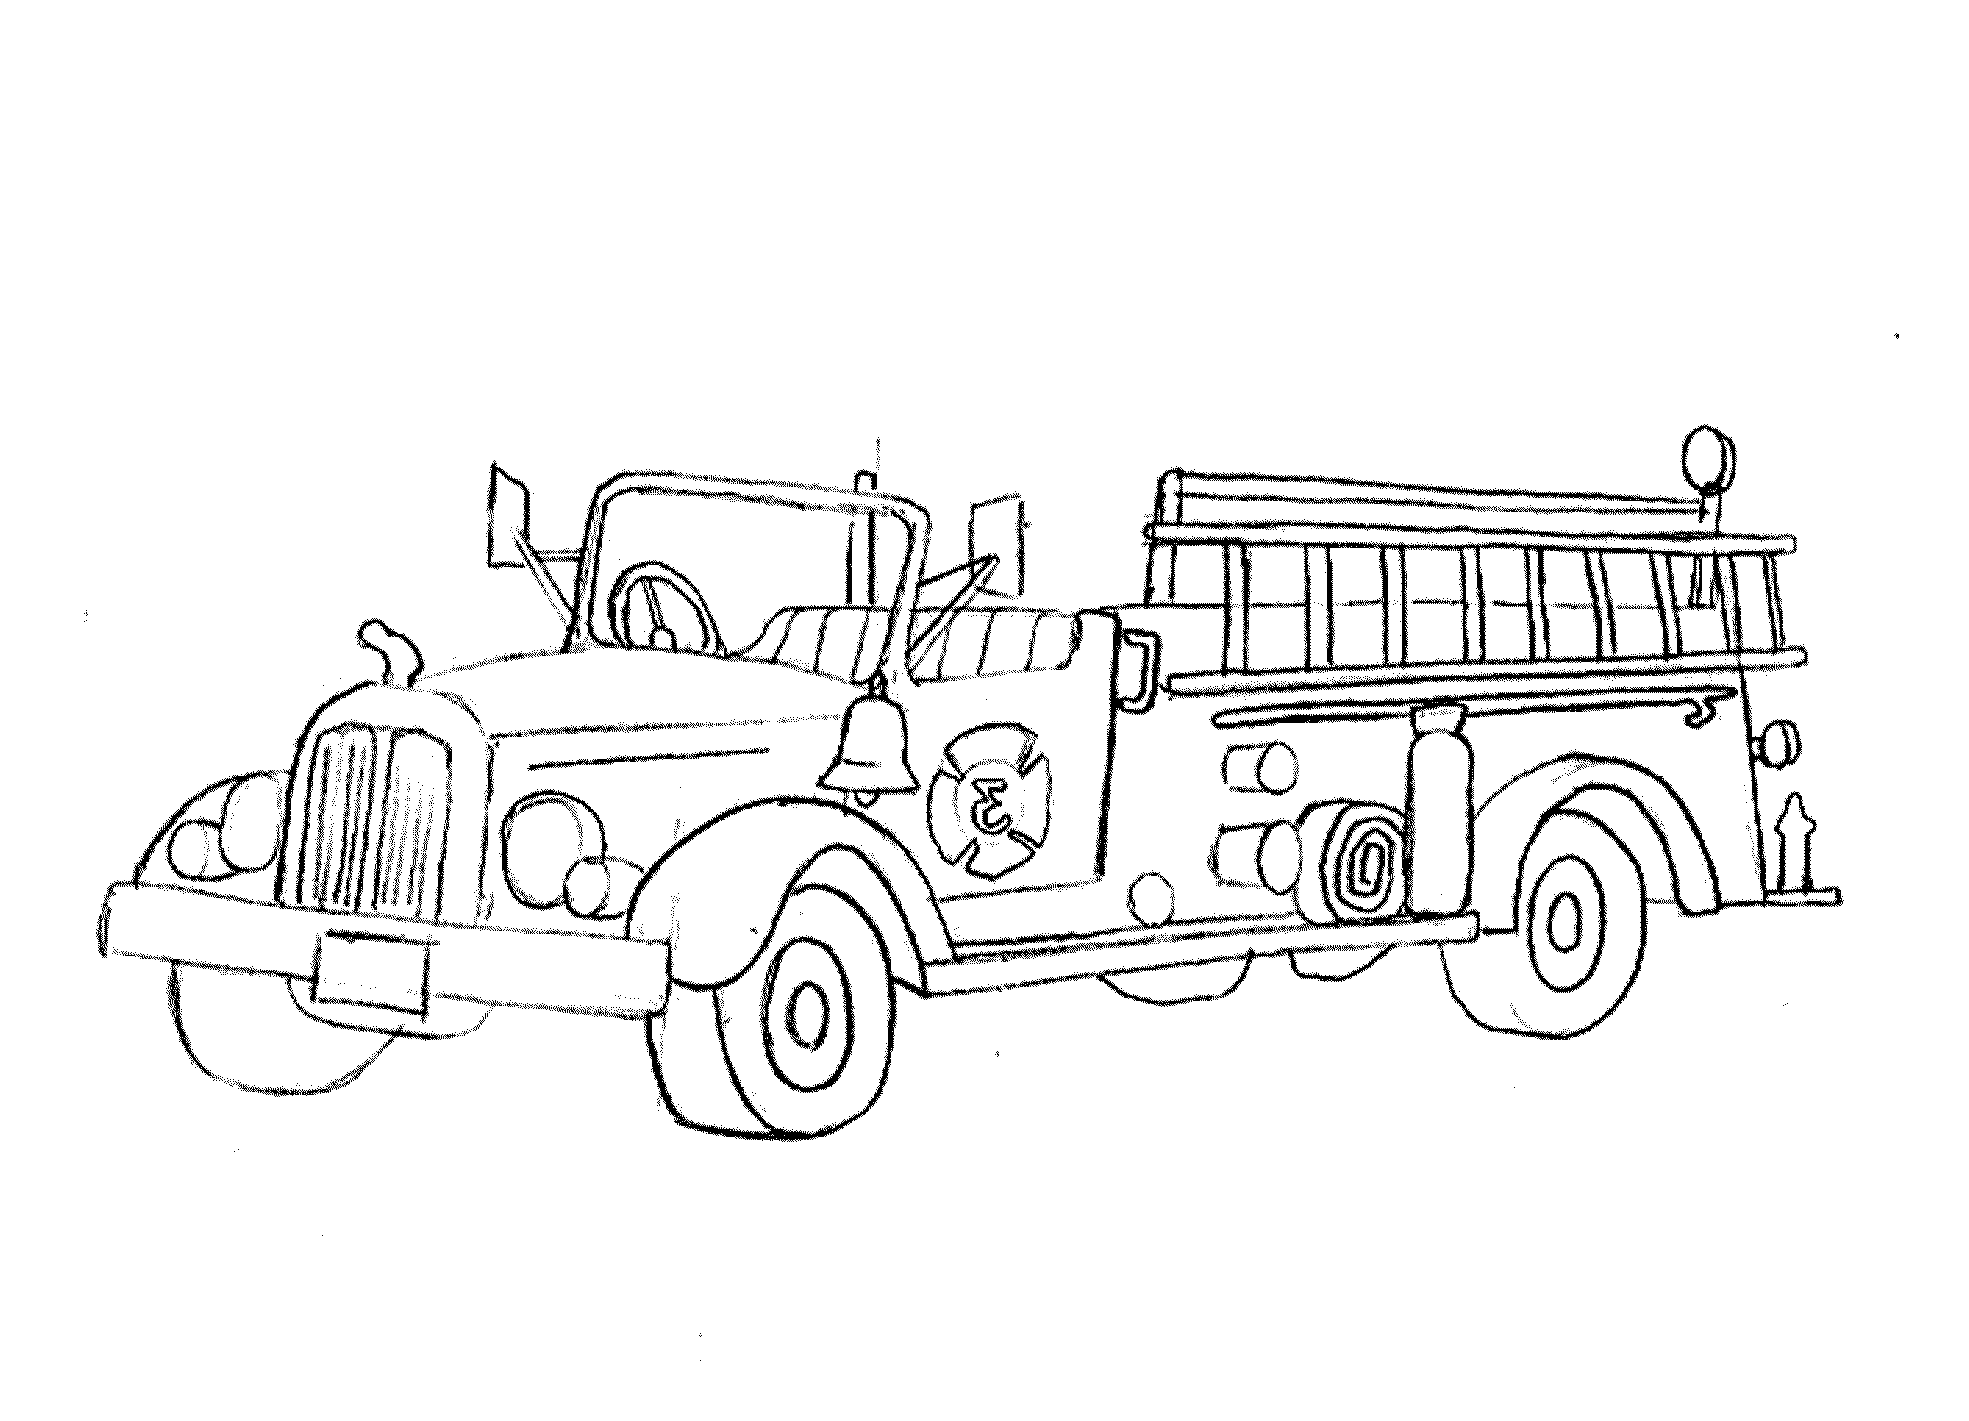 coloring page fire truck print download educational fire truck coloring pages coloring fire page truck